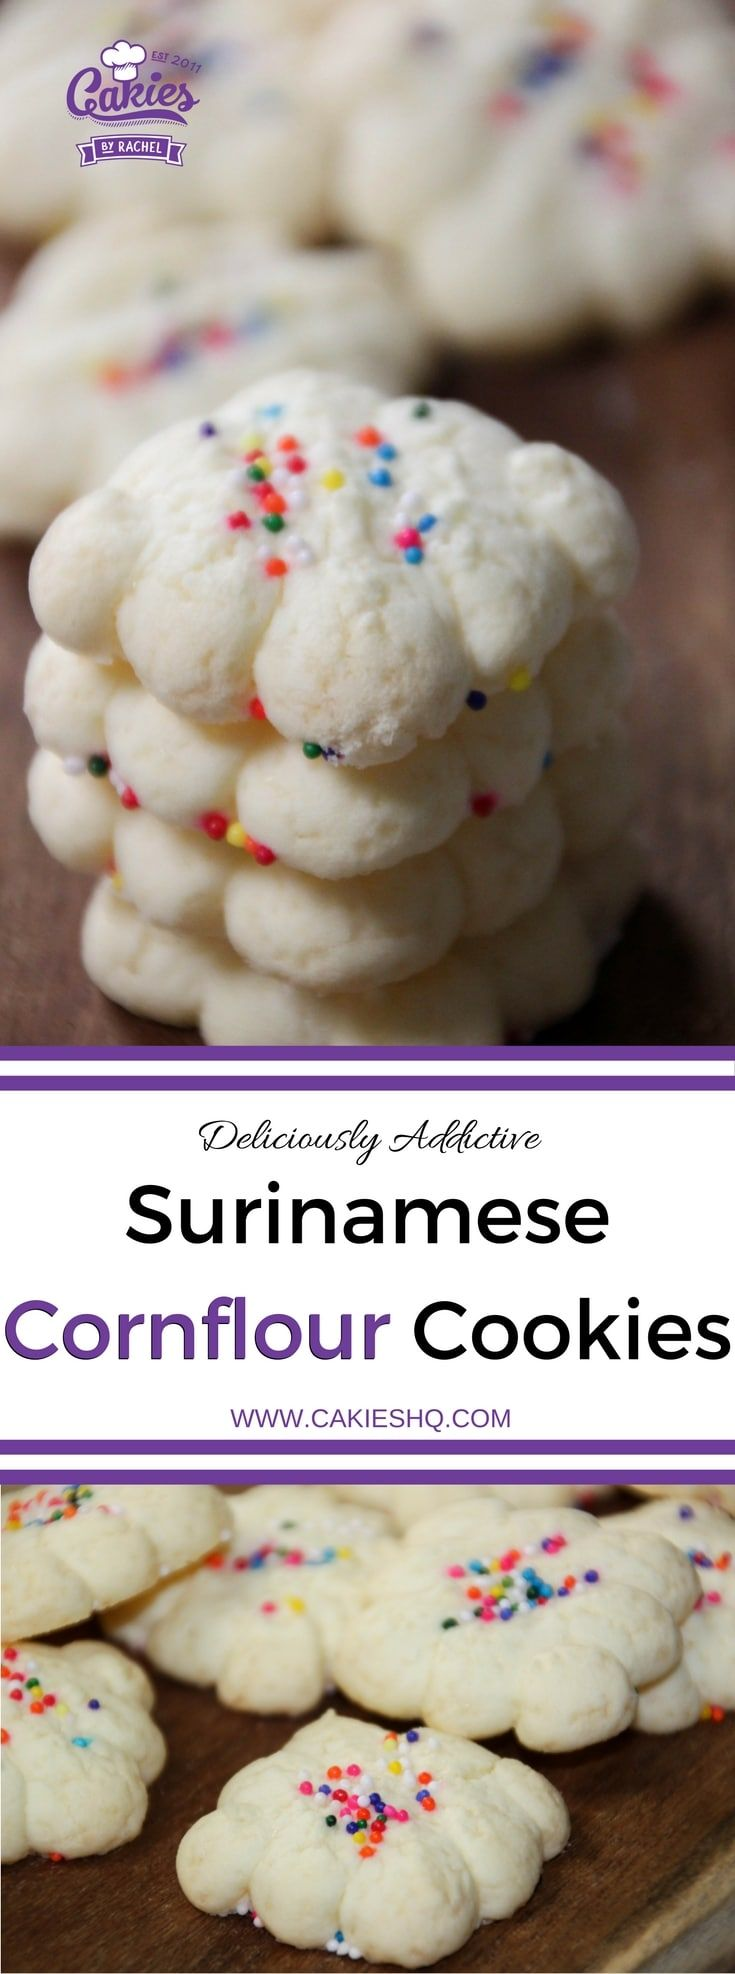 Making your own Surinamese Cornflour Cookies (Cornstarch Cookies) really isn't that hard and it's a fun as well.   Recipe   Gluten Free